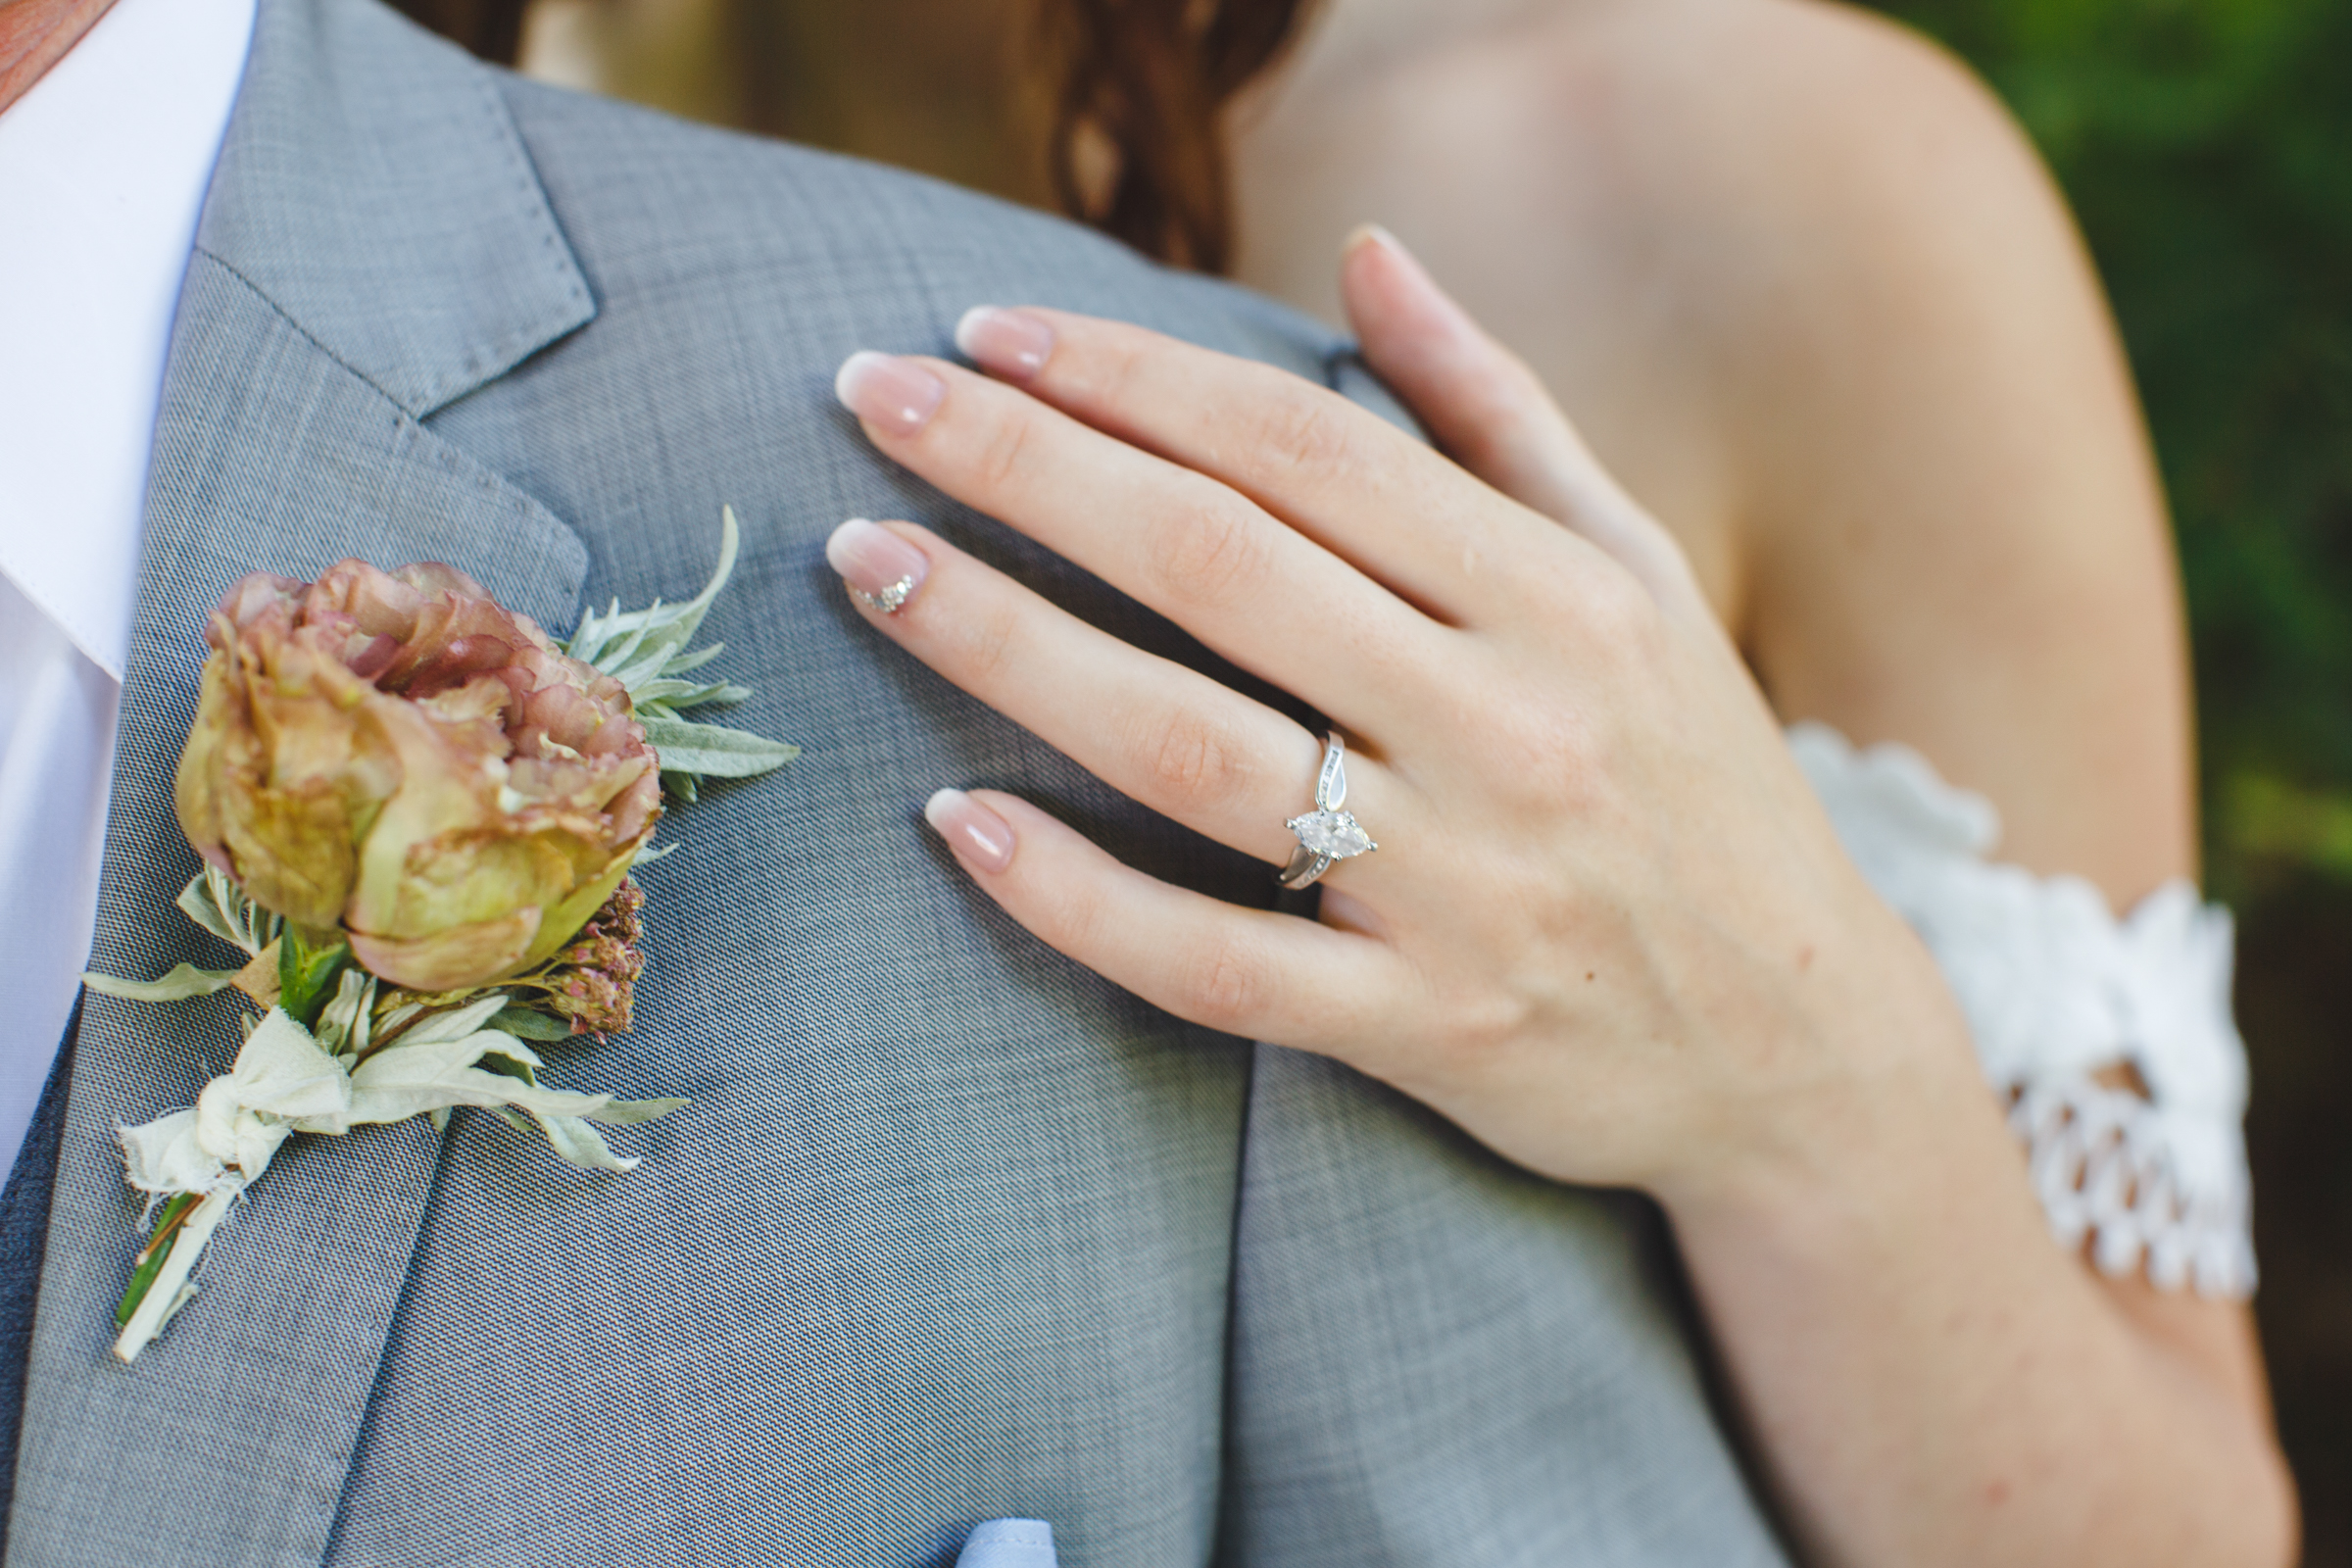 Detail of grooms boutonniere and brides ring - photo by Satya Curcio Photography